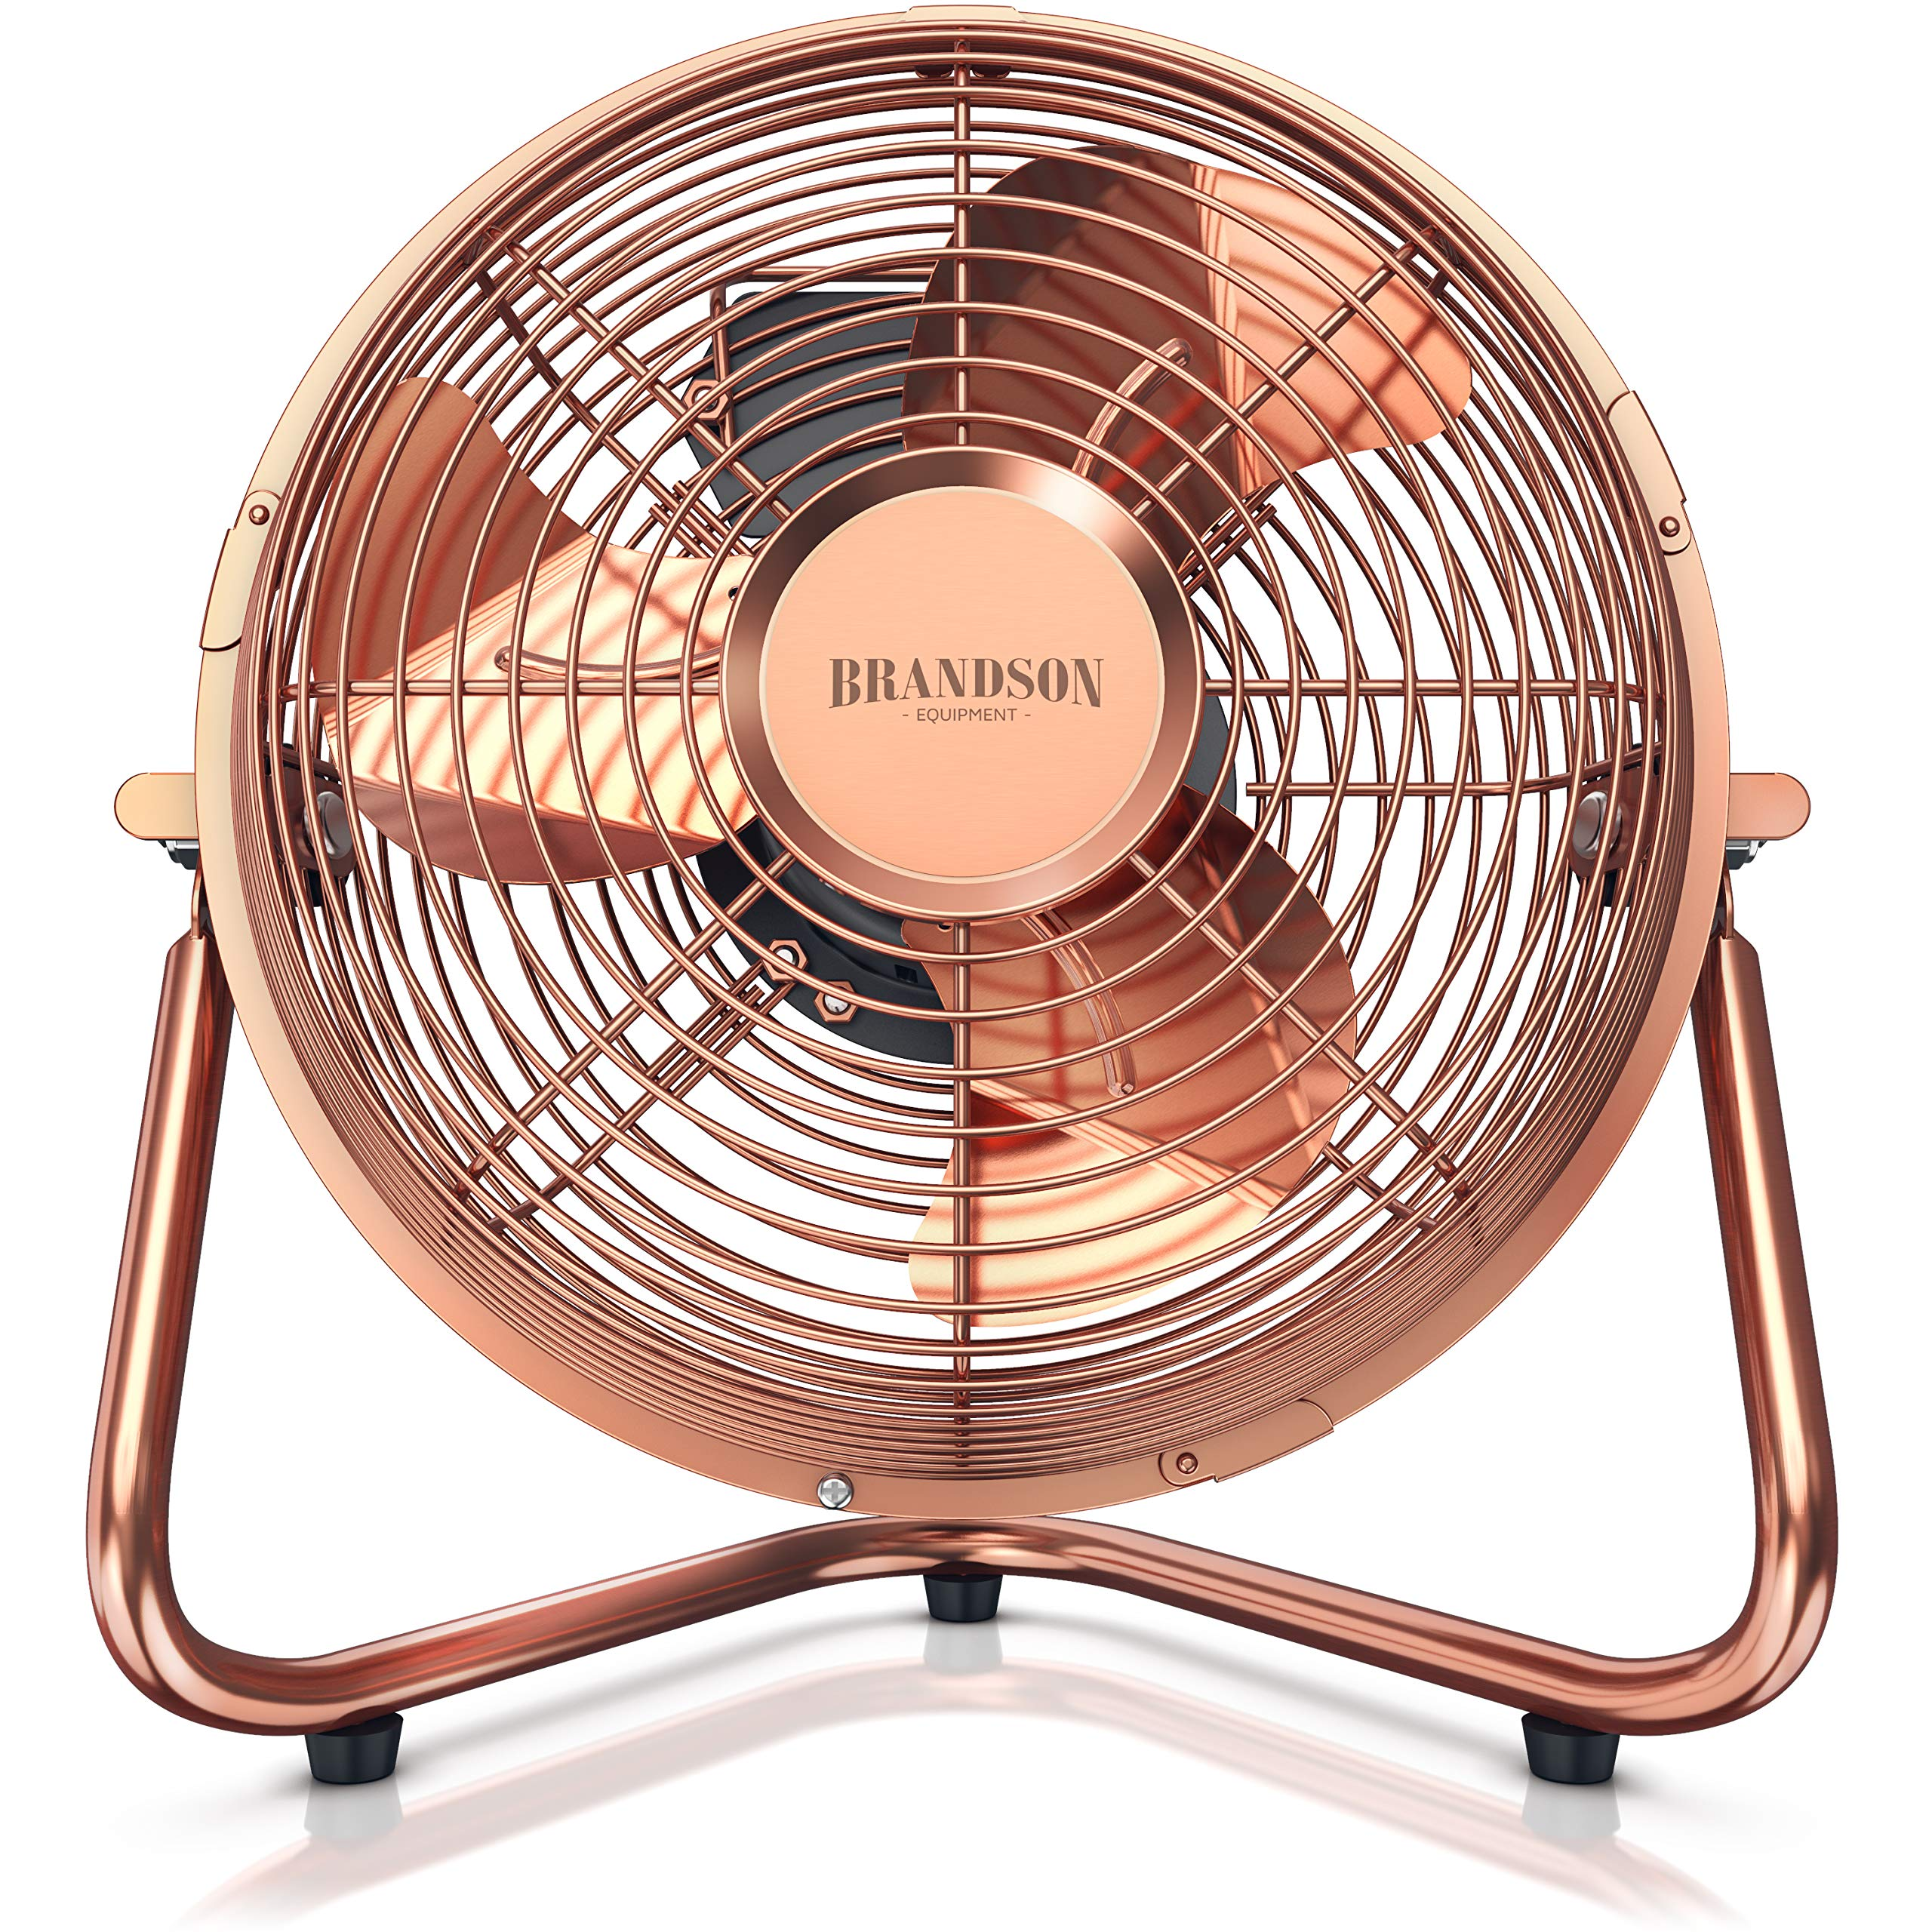 Brandson 961611361 Ventilador de mesa, Cobre, 32 Watt: Amazon.es ...